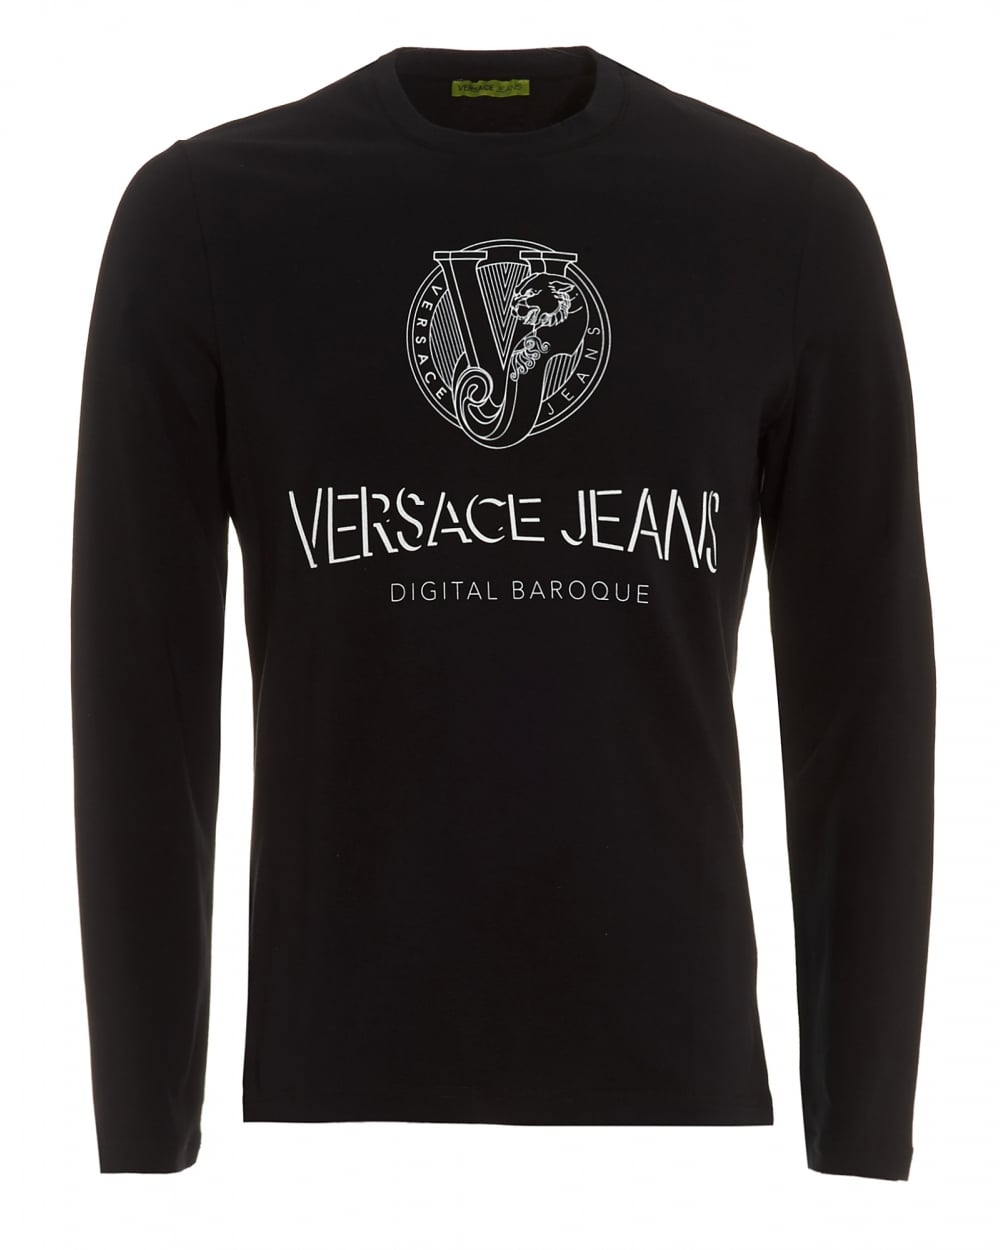 Versace jeans mens black long sleeve t shirt slim fit for Mens slim fit long sleeve t shirts